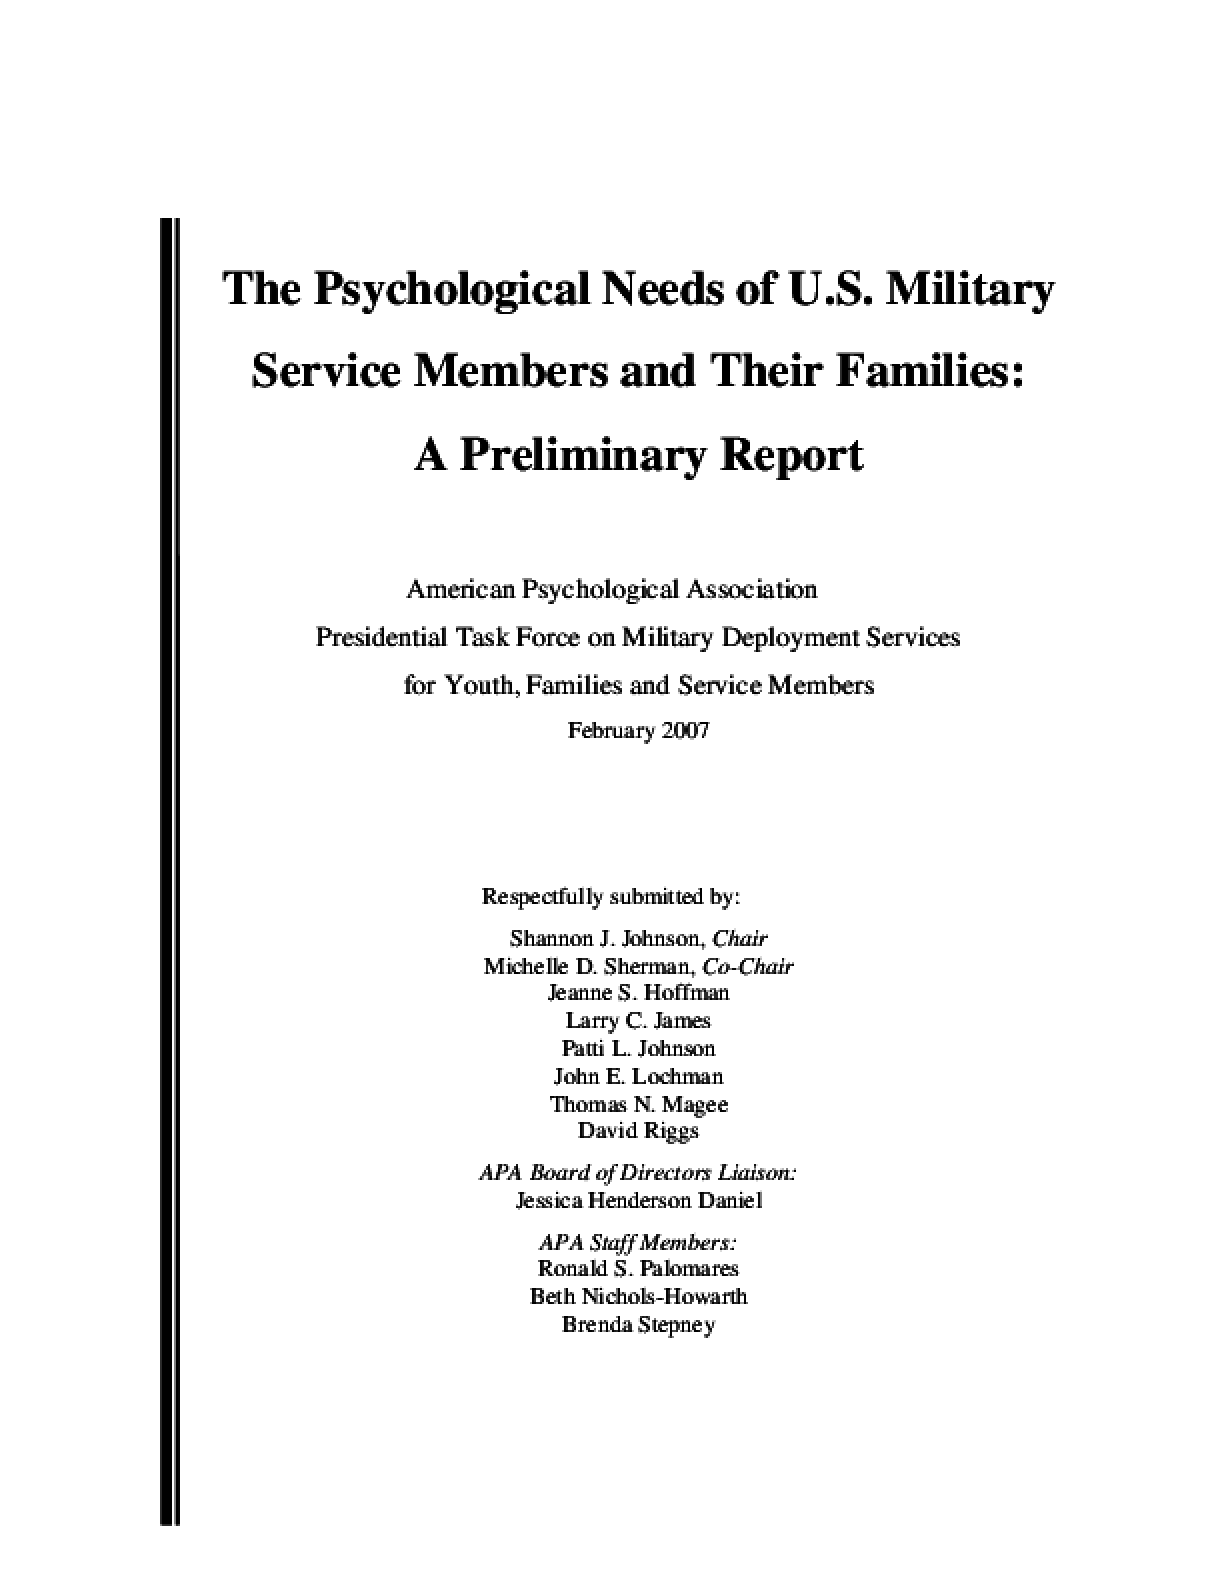 The Psychological Needs of U.S. Military Service Members and Their Families: A Preliminary Report